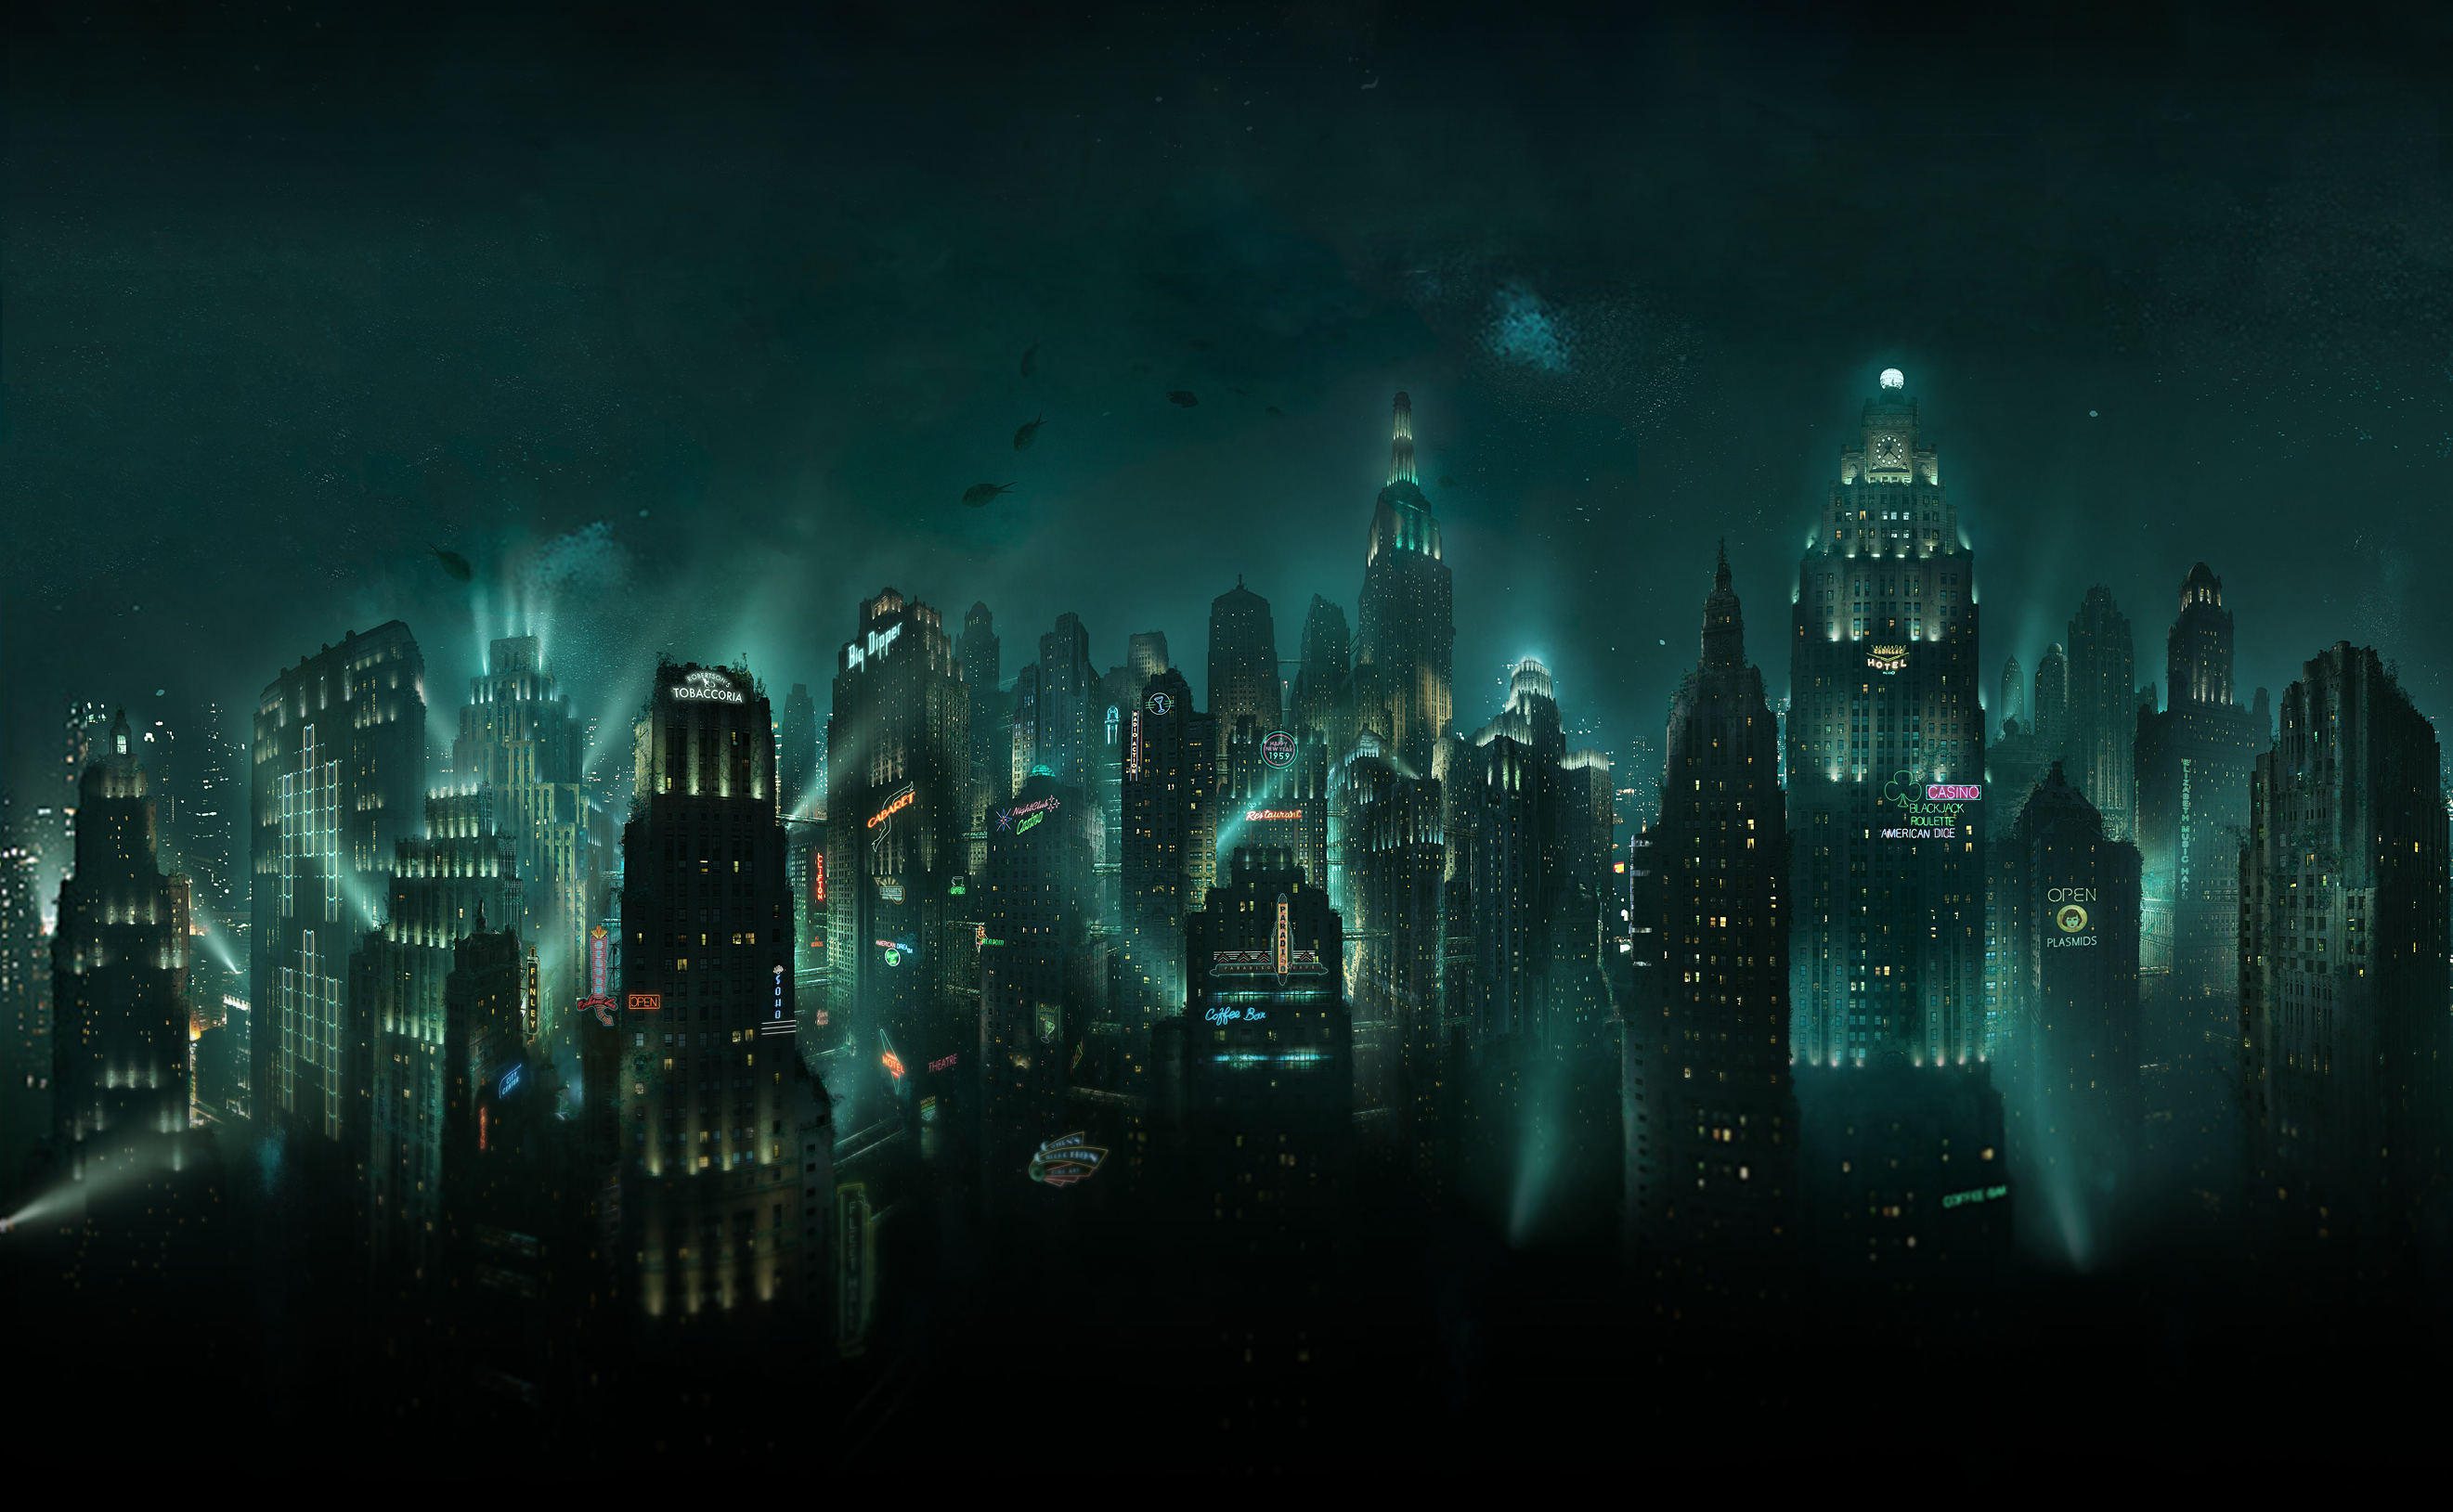 Bioshock Rapture wallpaper 48348 2642x1629